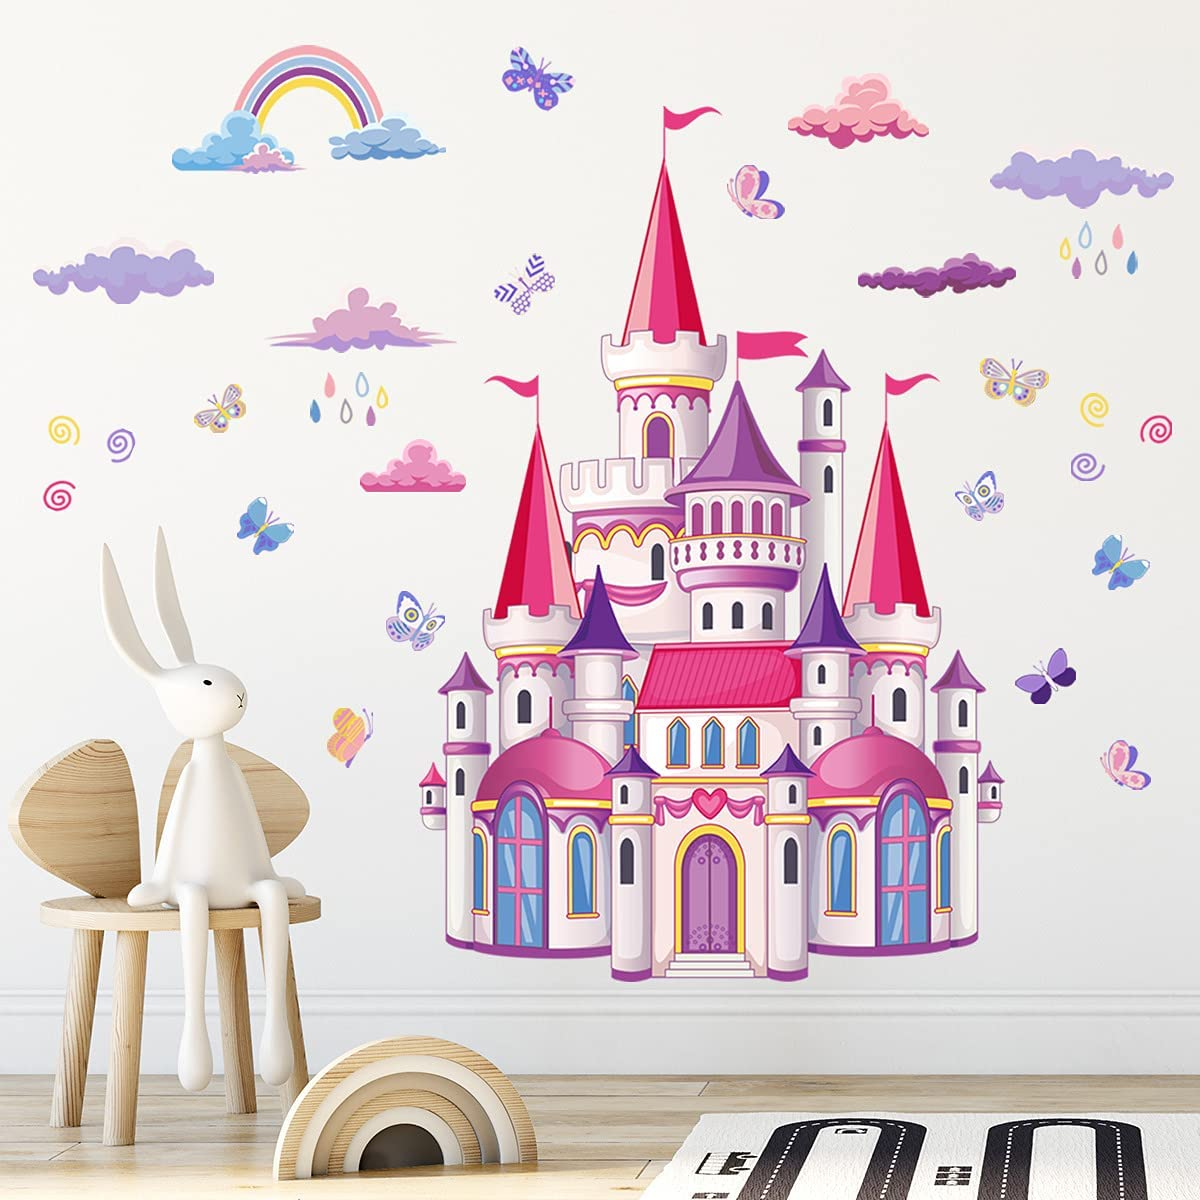 Colorful Castle Wall Decal,Rainbow Butterfly Wall Stickers Clouds Rain Peel and Stick Removable Decorations Décor for Girls Girls Bedroom Kids Nursery Living Room Murals